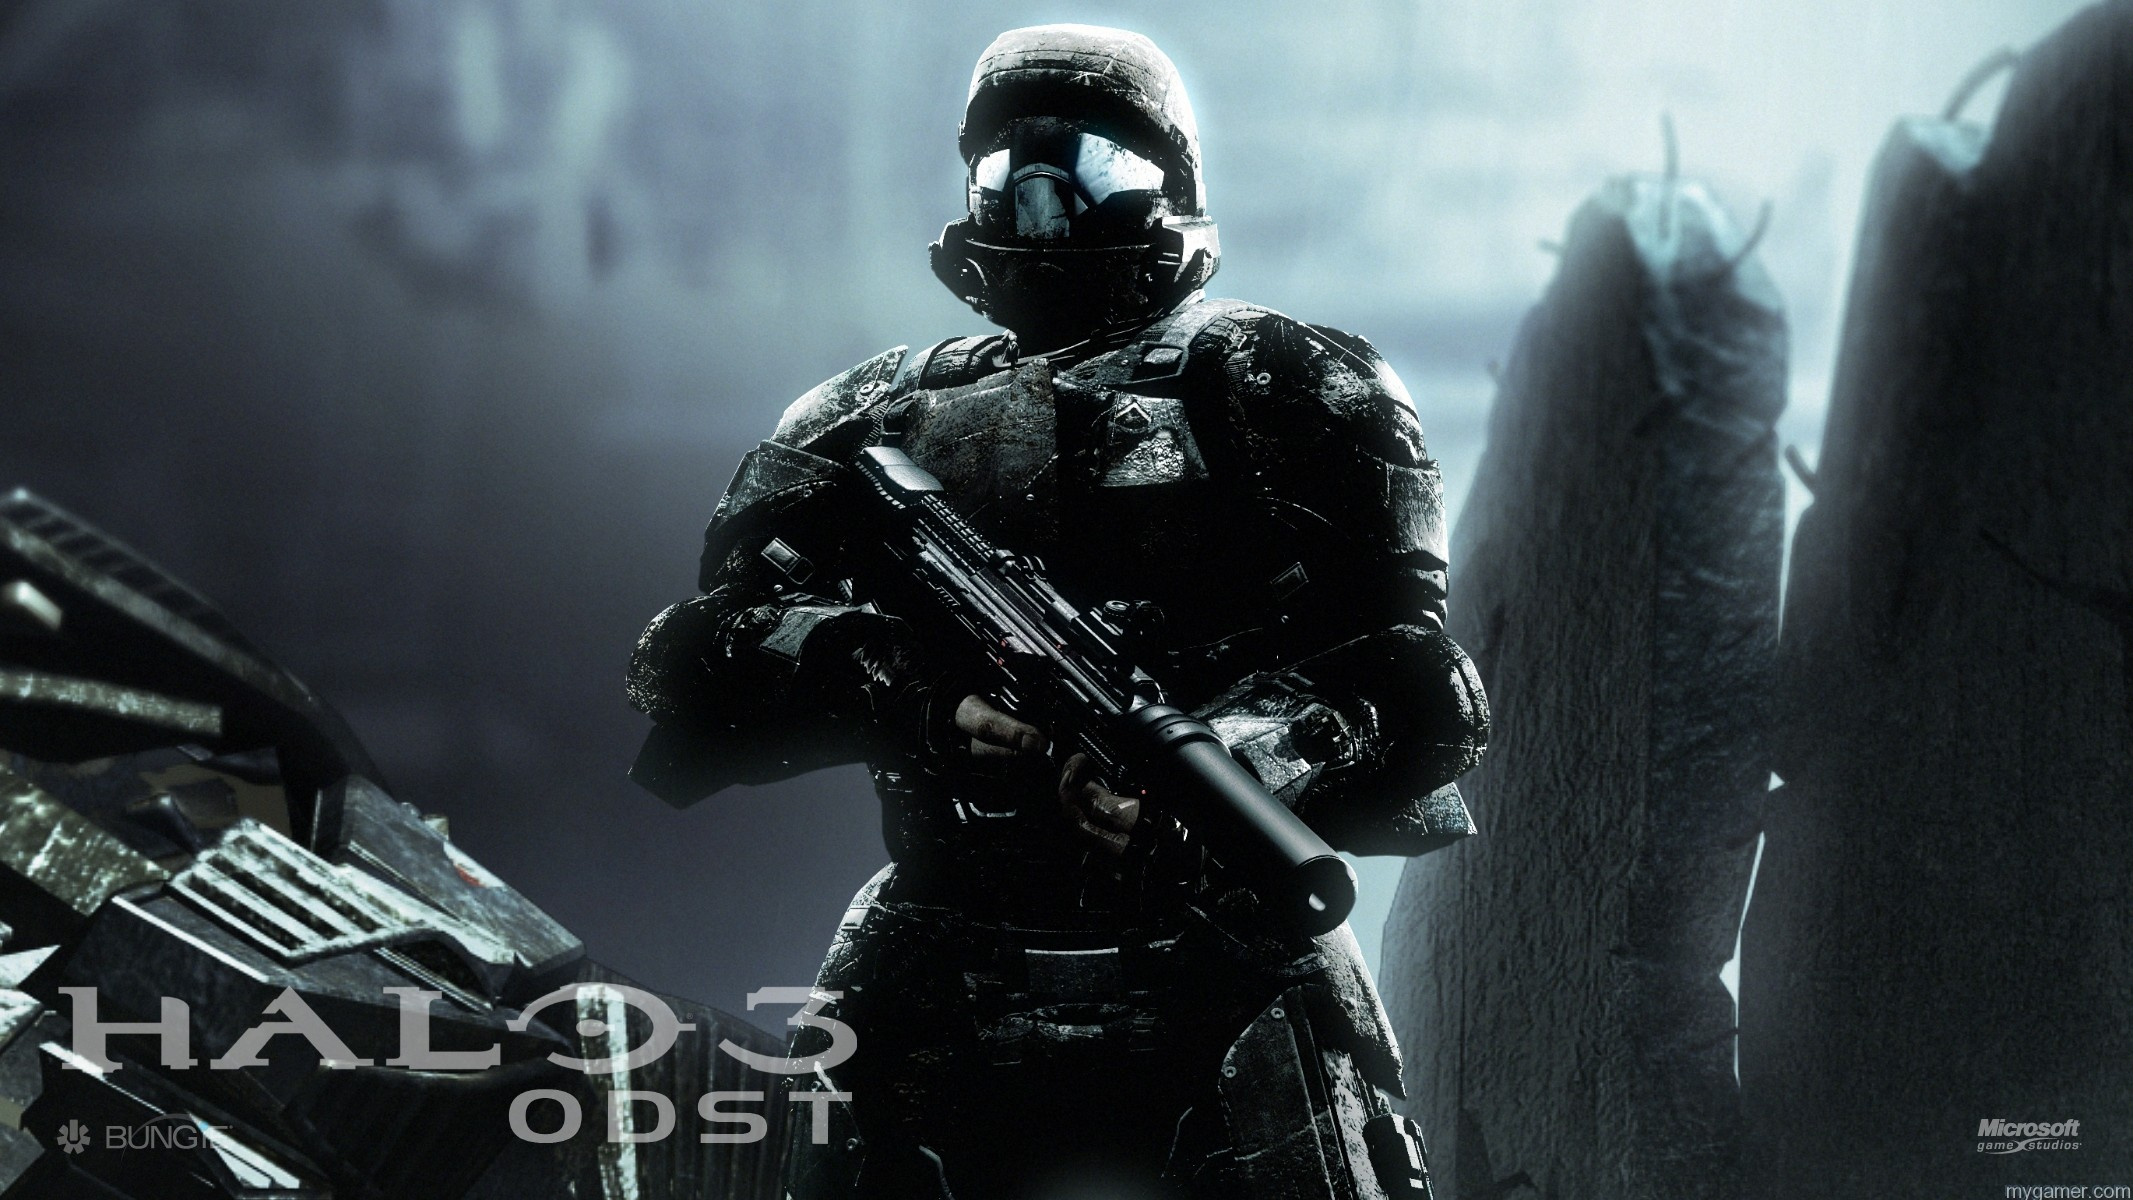 343 Giving Away Halo 3: ODST And Other Goodies To Try And Restore Faith 343 Giving Away Halo 3: ODST And Other Goodies To Try And Restore Faith ODST 1